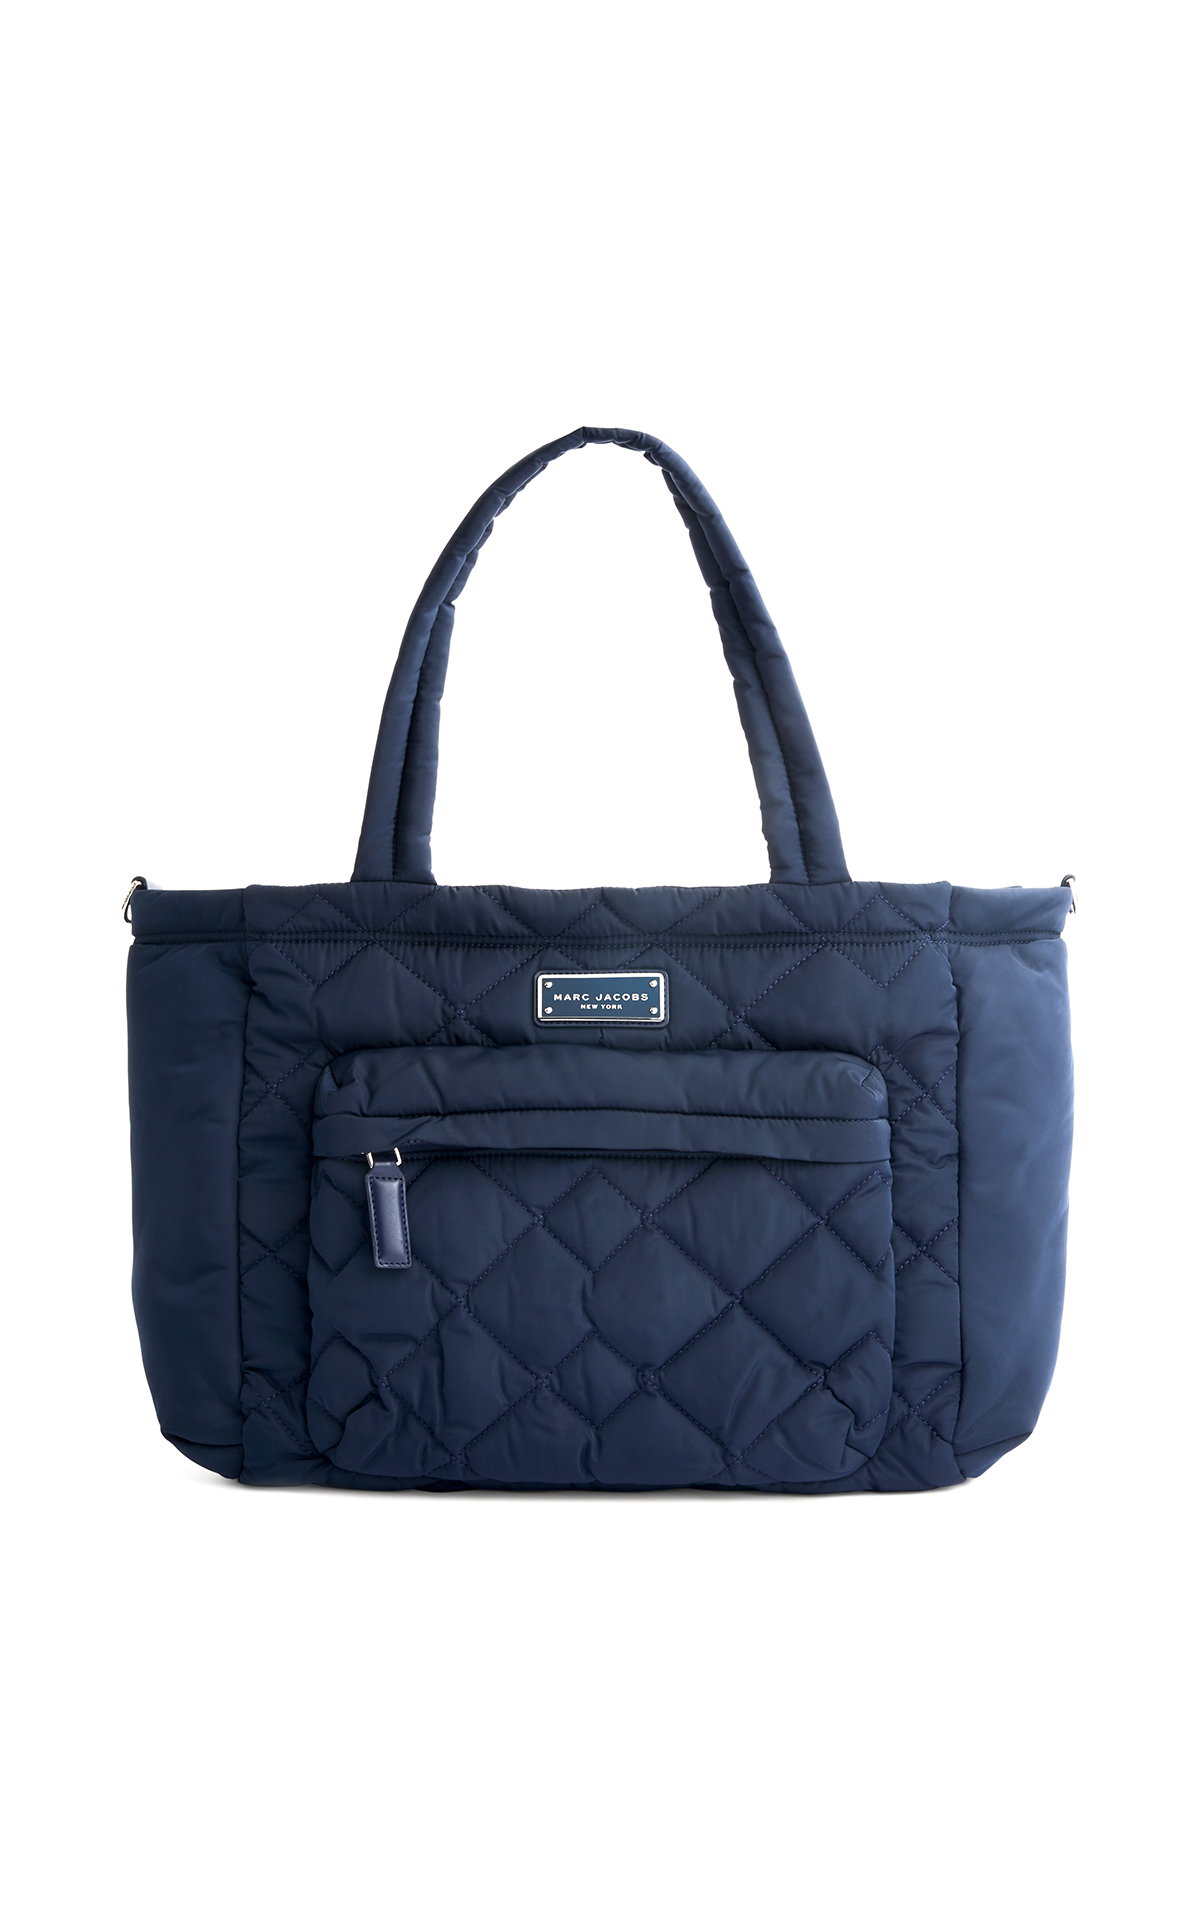 La Vallée Village Marc Jacobs blue bag